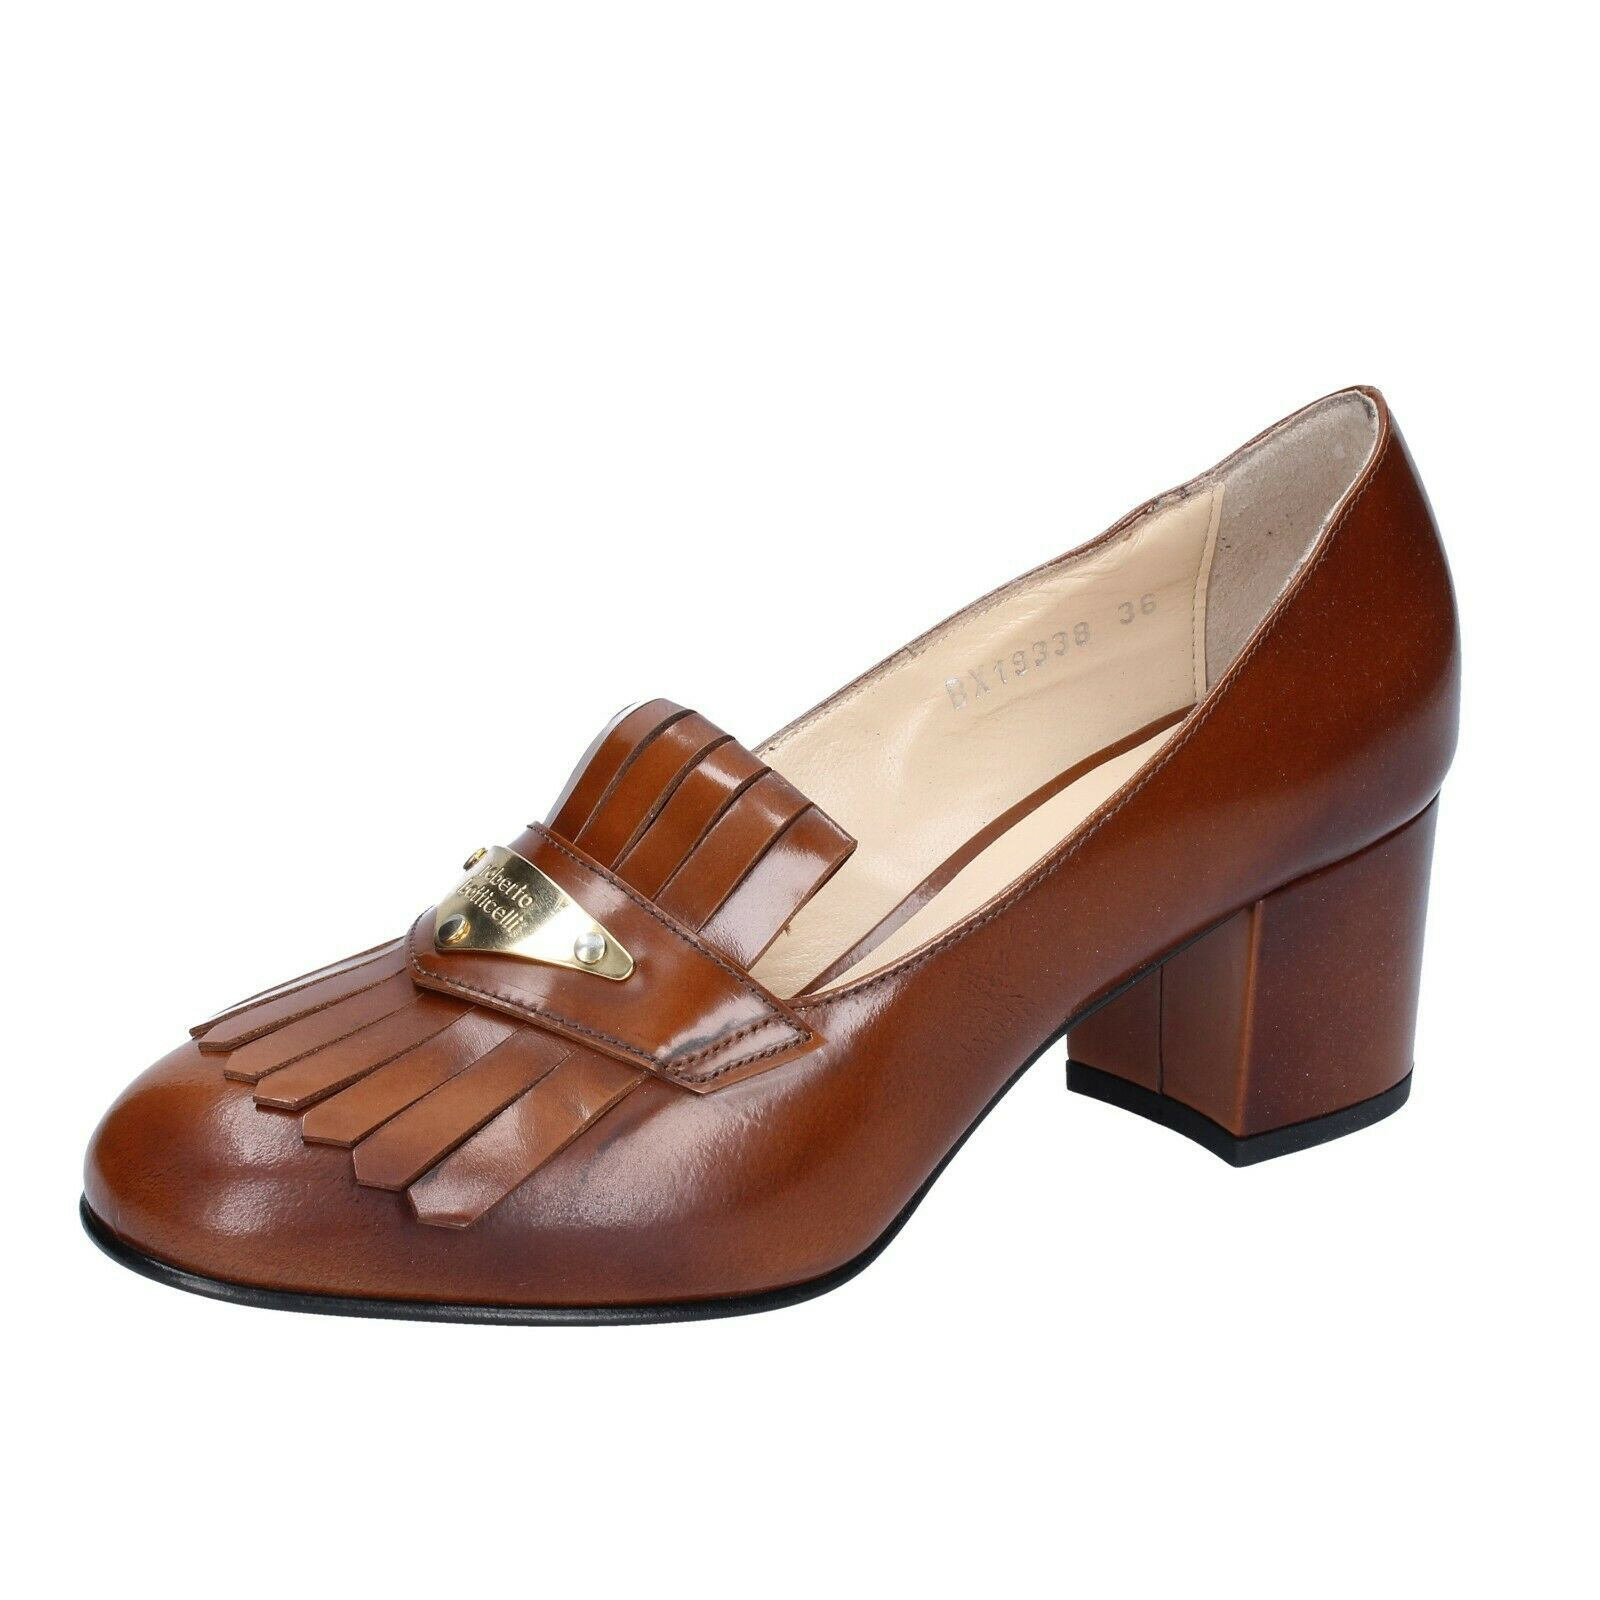 Womens shoes ROBERTO BOTTICELLI 4 (EU 37) moccasins brown shiny leather BS283-37